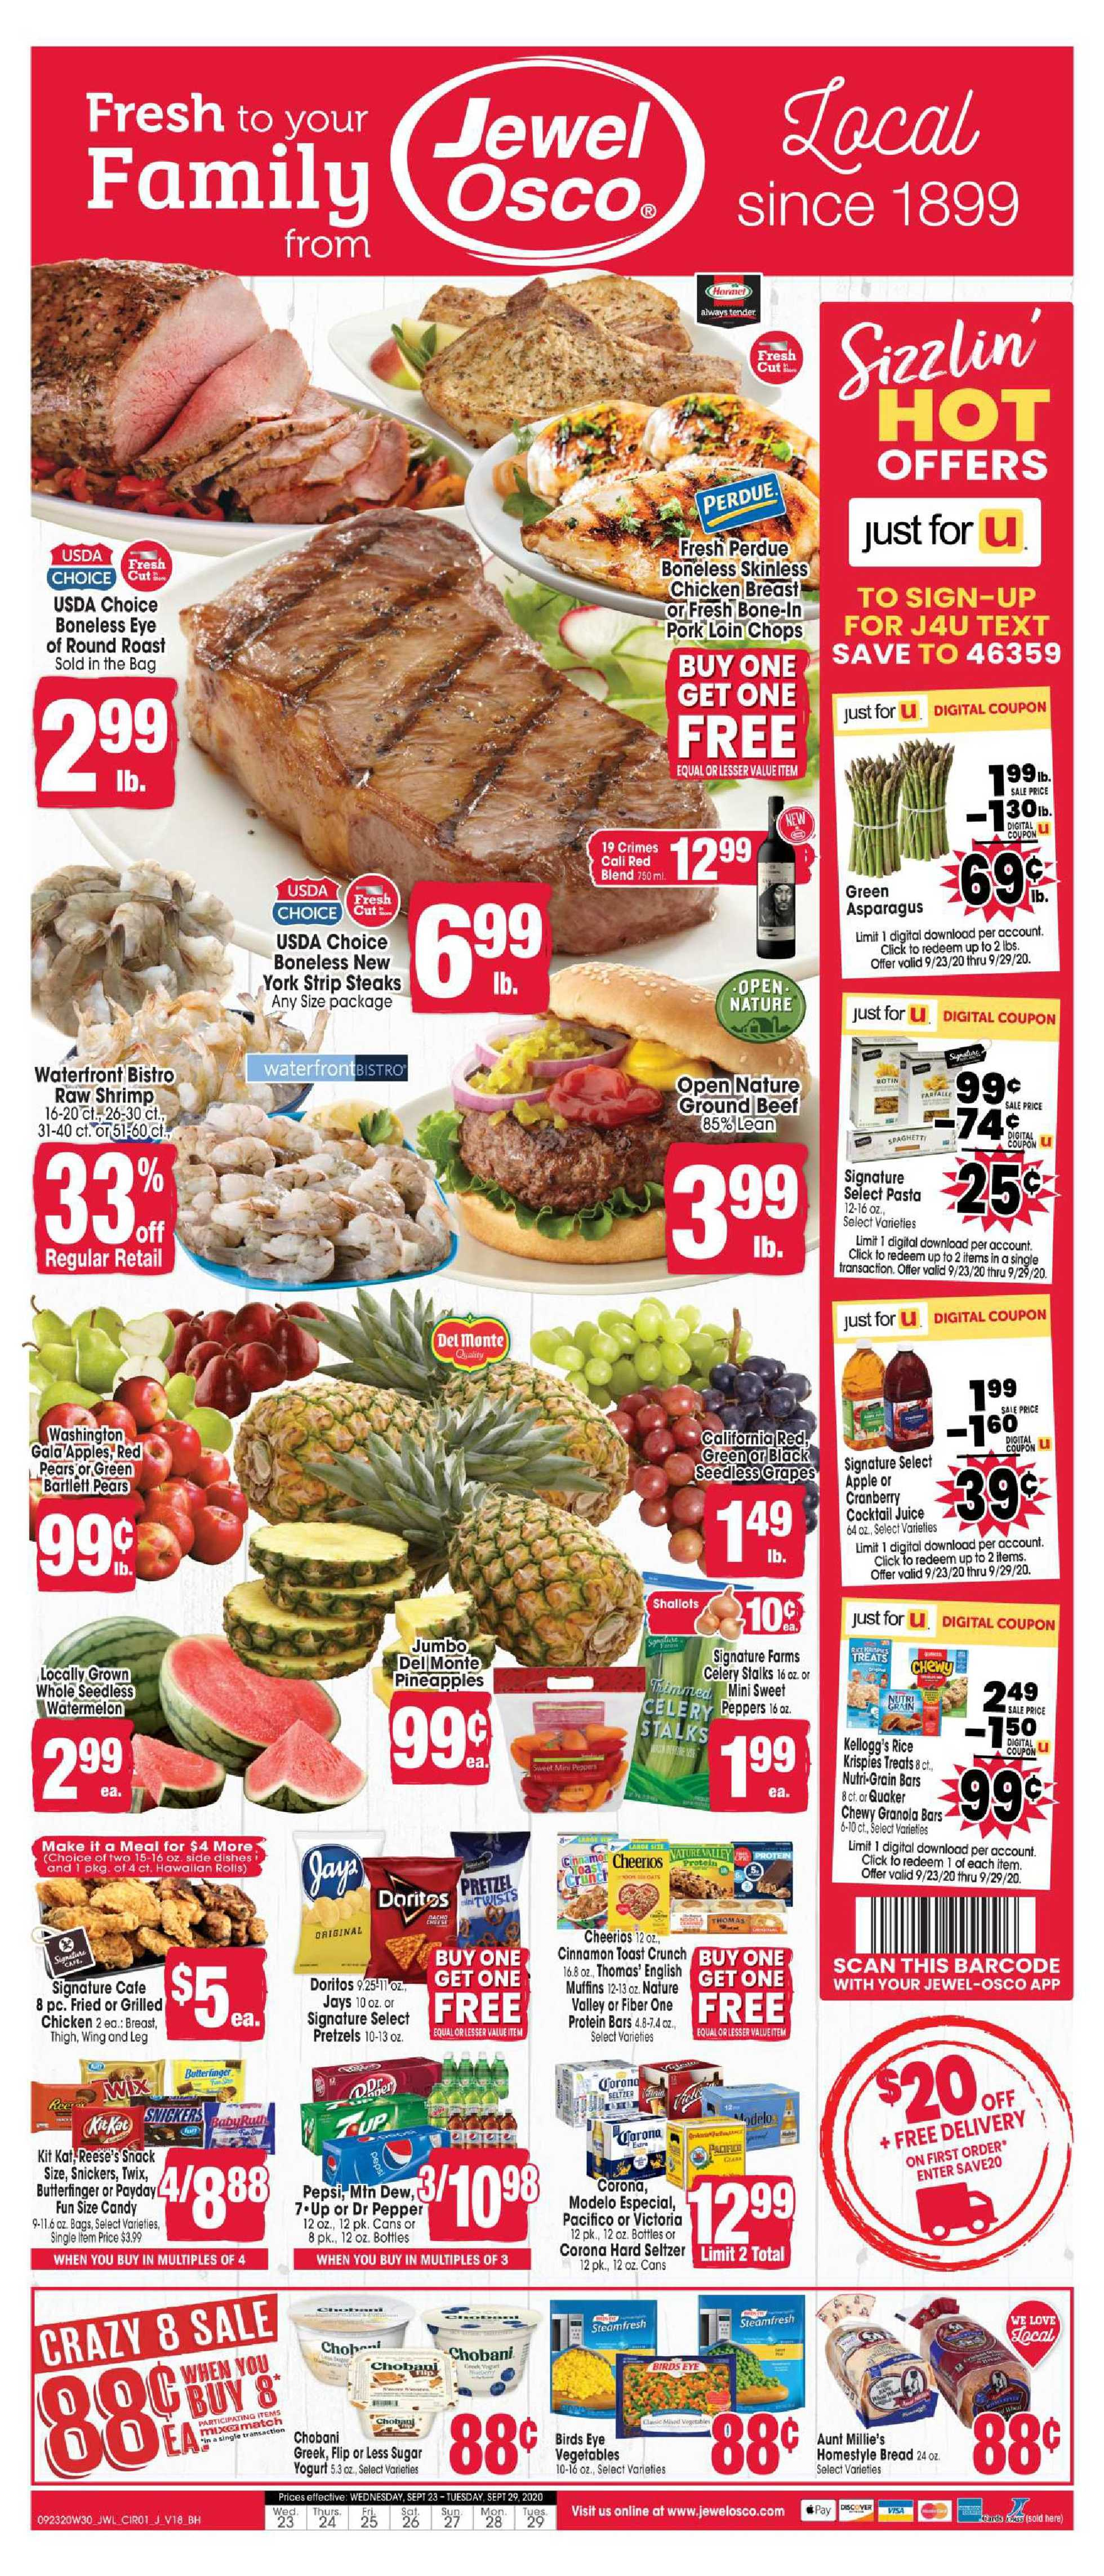 Jewel Osco - deals are valid from 09/23/20 to 09/29/20 - page 1.